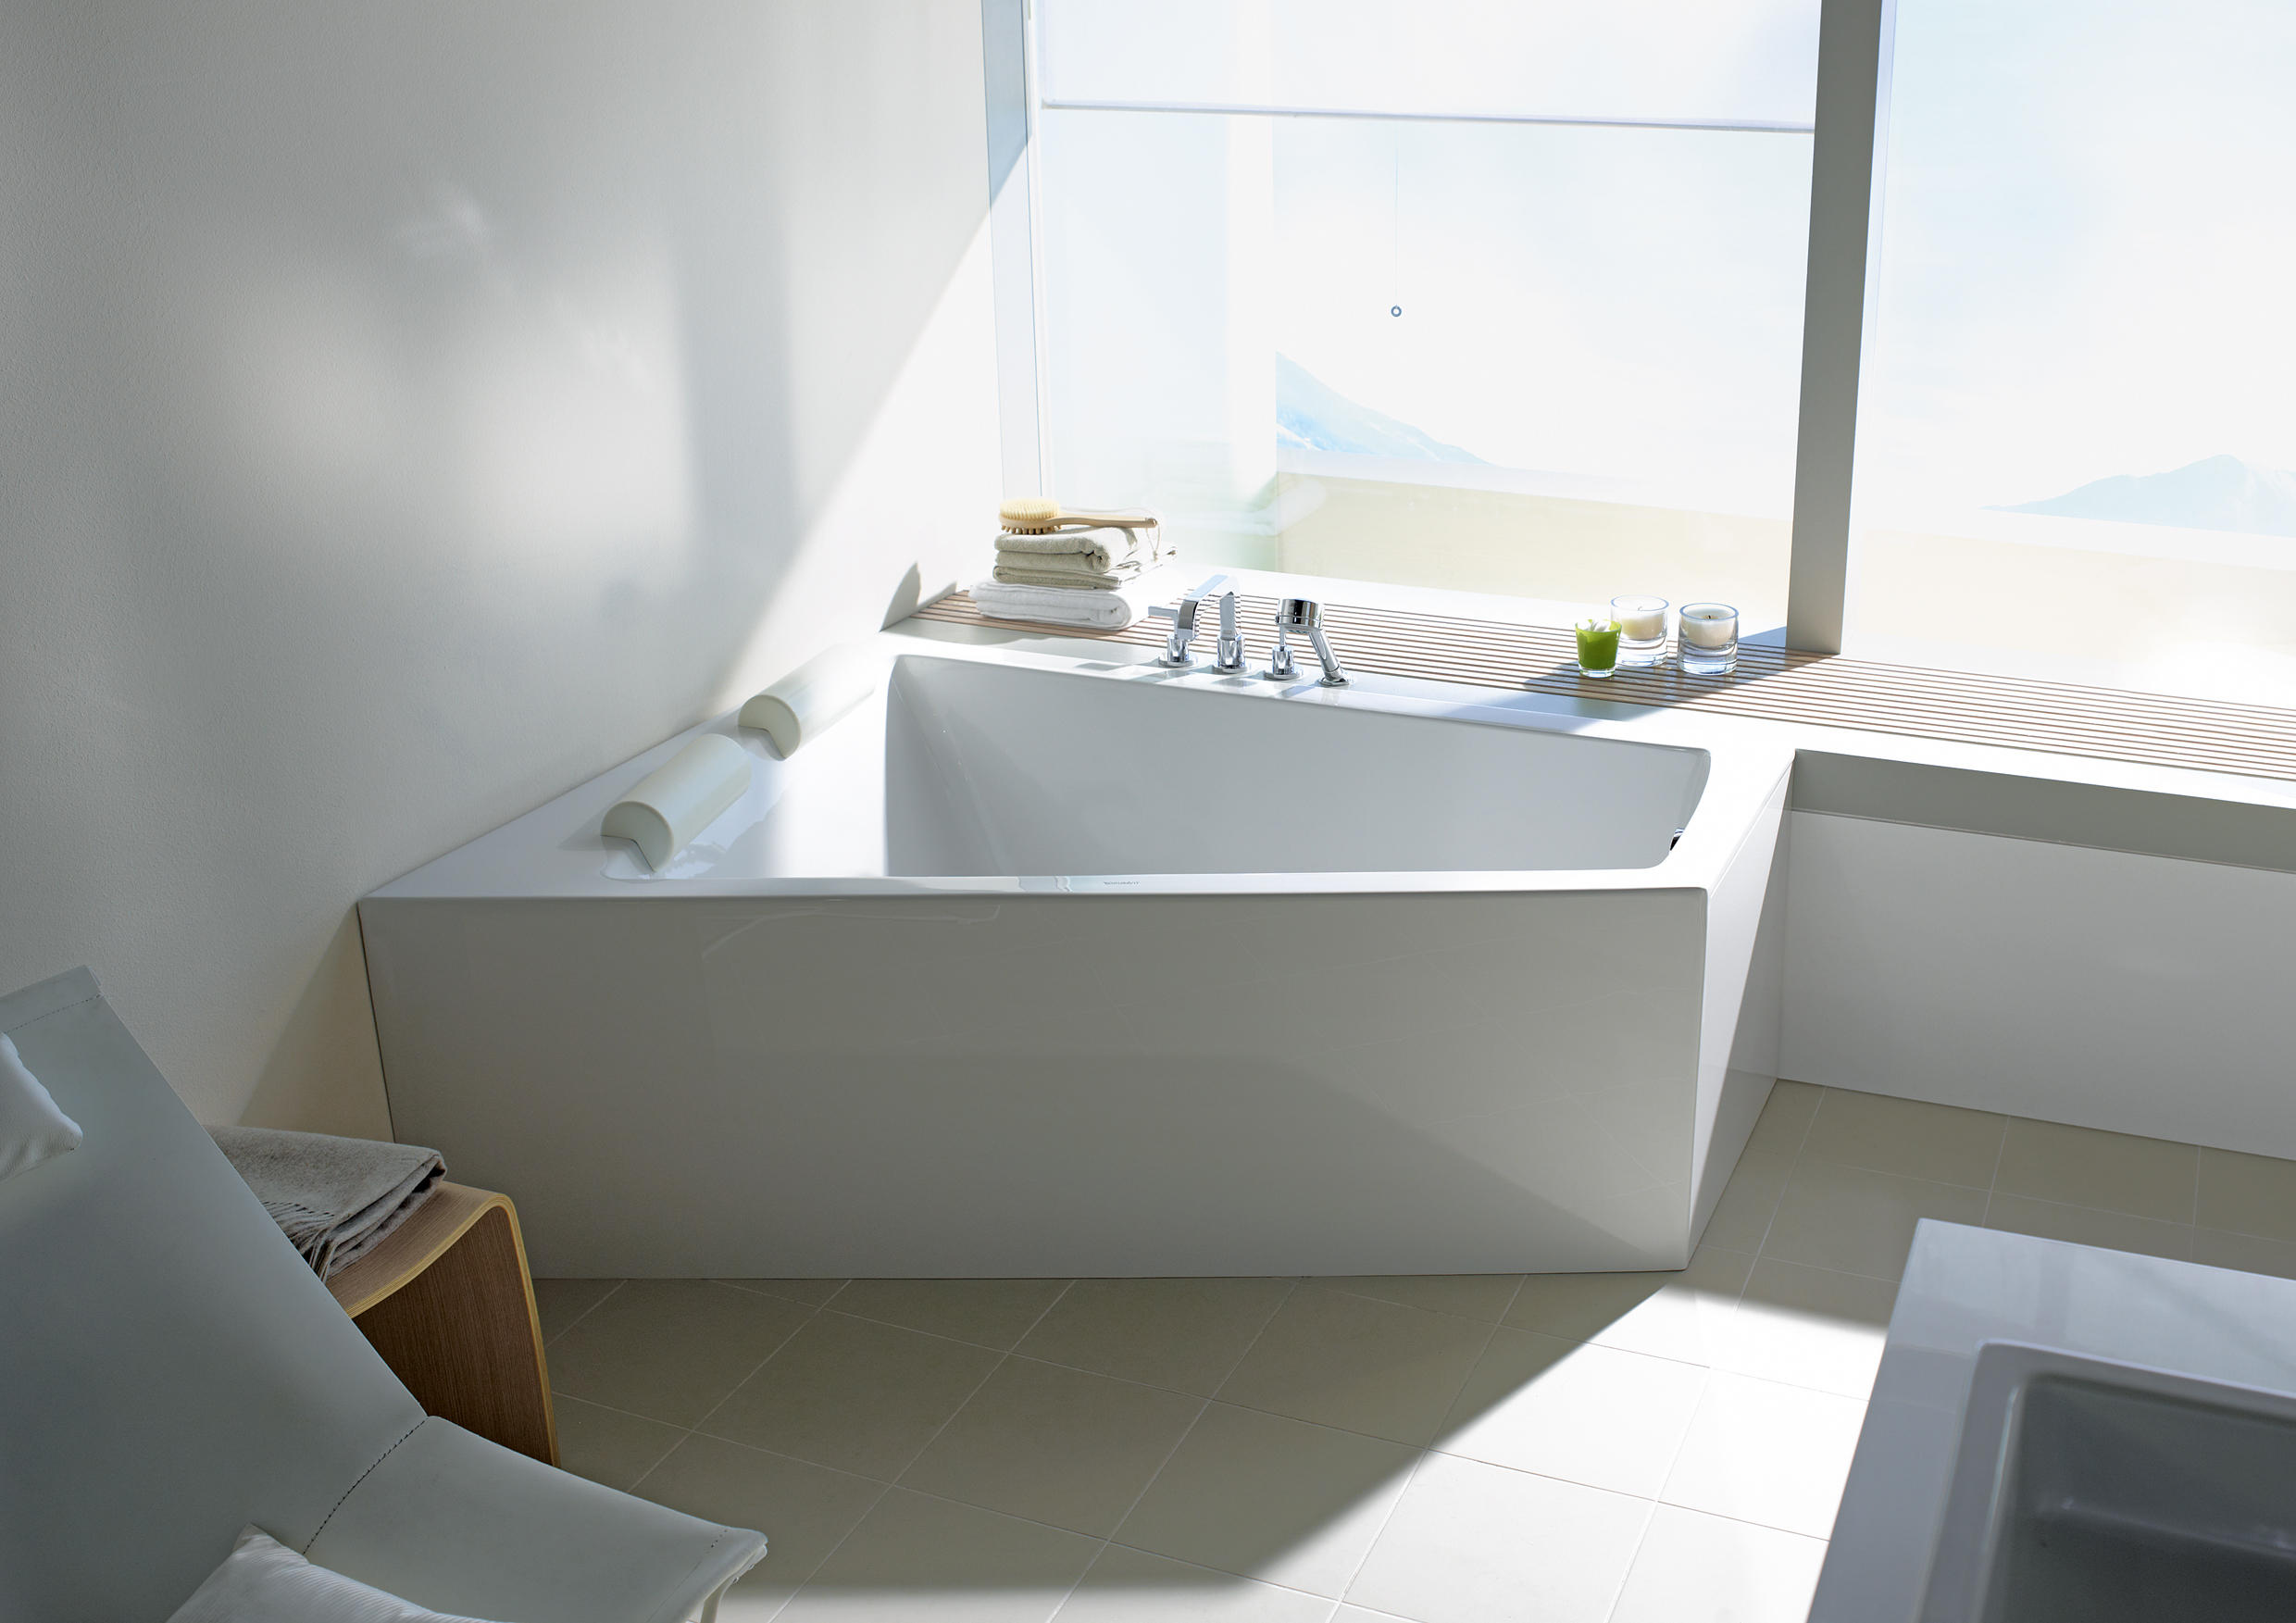 Paiova bathtub built in bathtubs from duravit architonic for Petite baignoire design